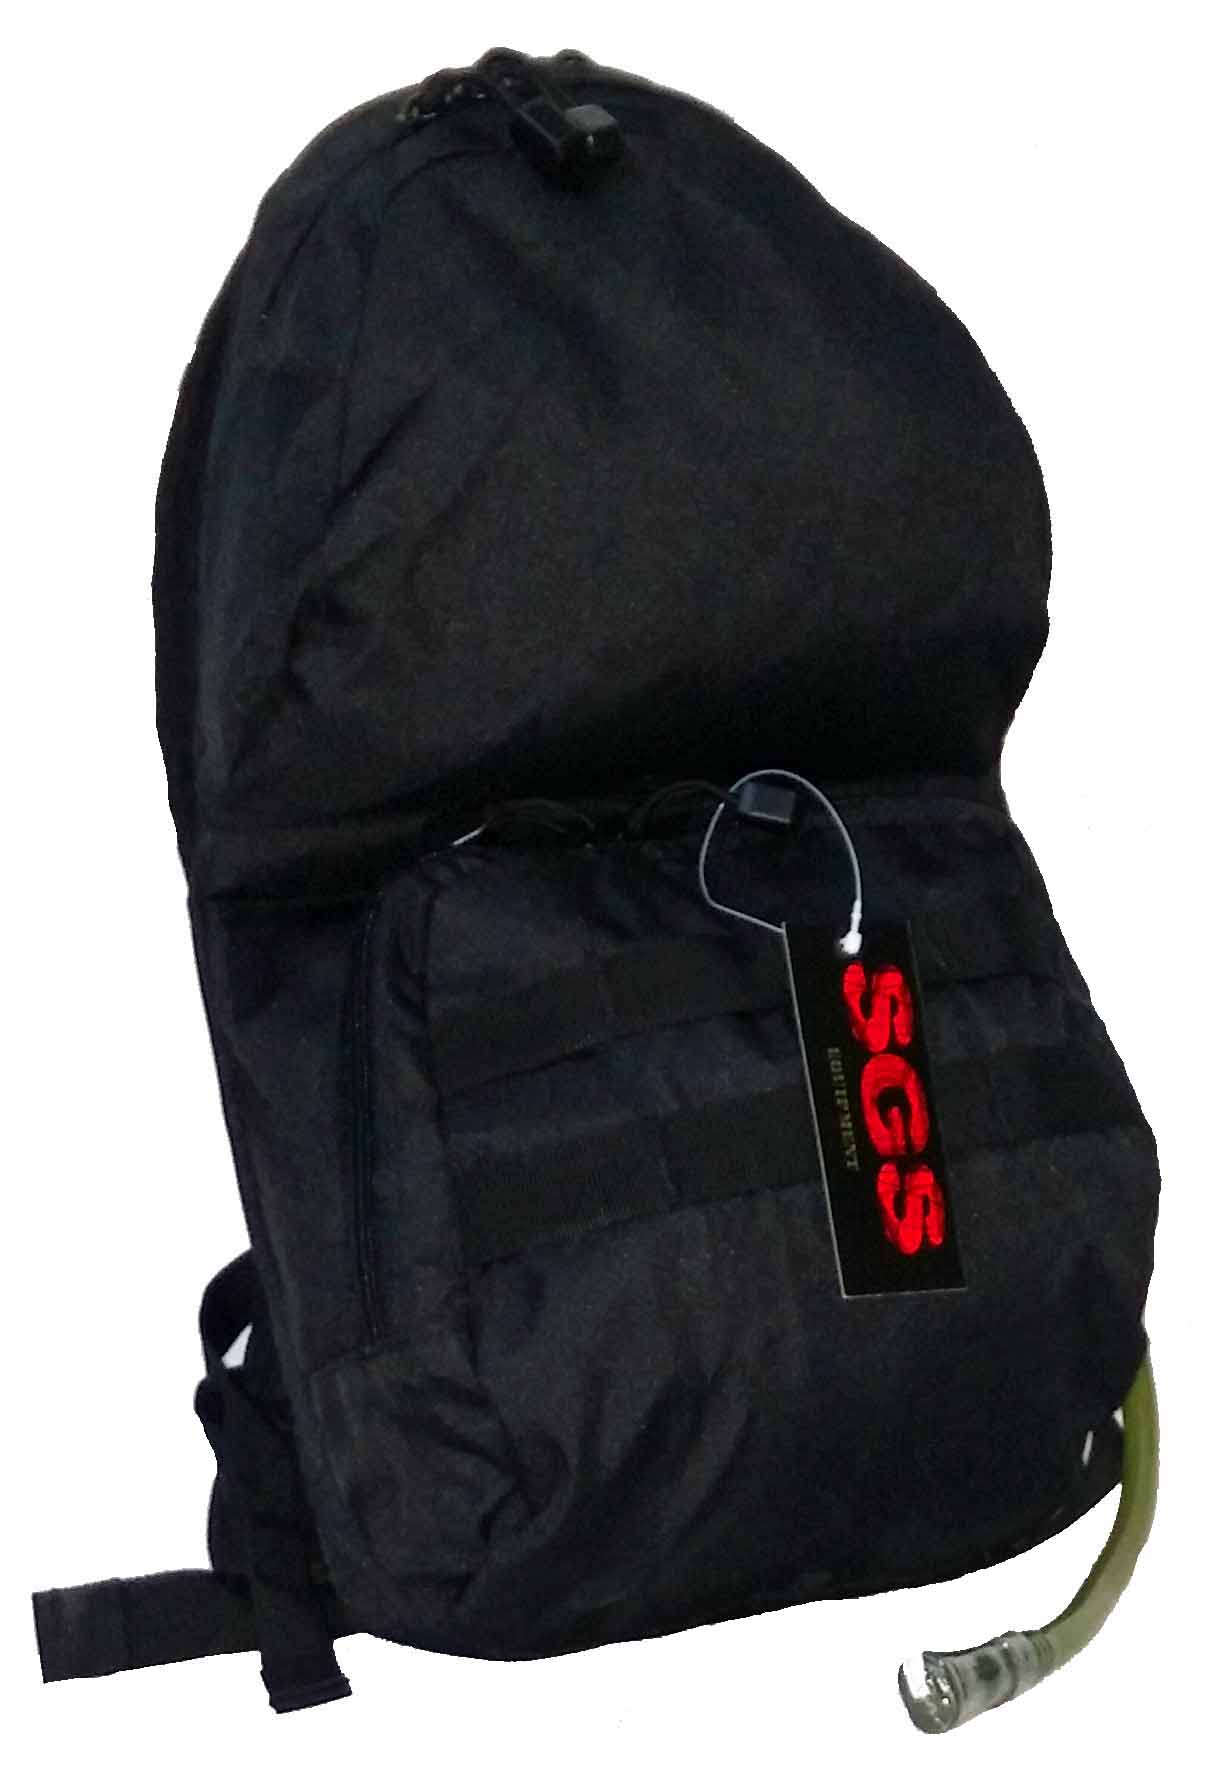 SGS Black hydratation pack